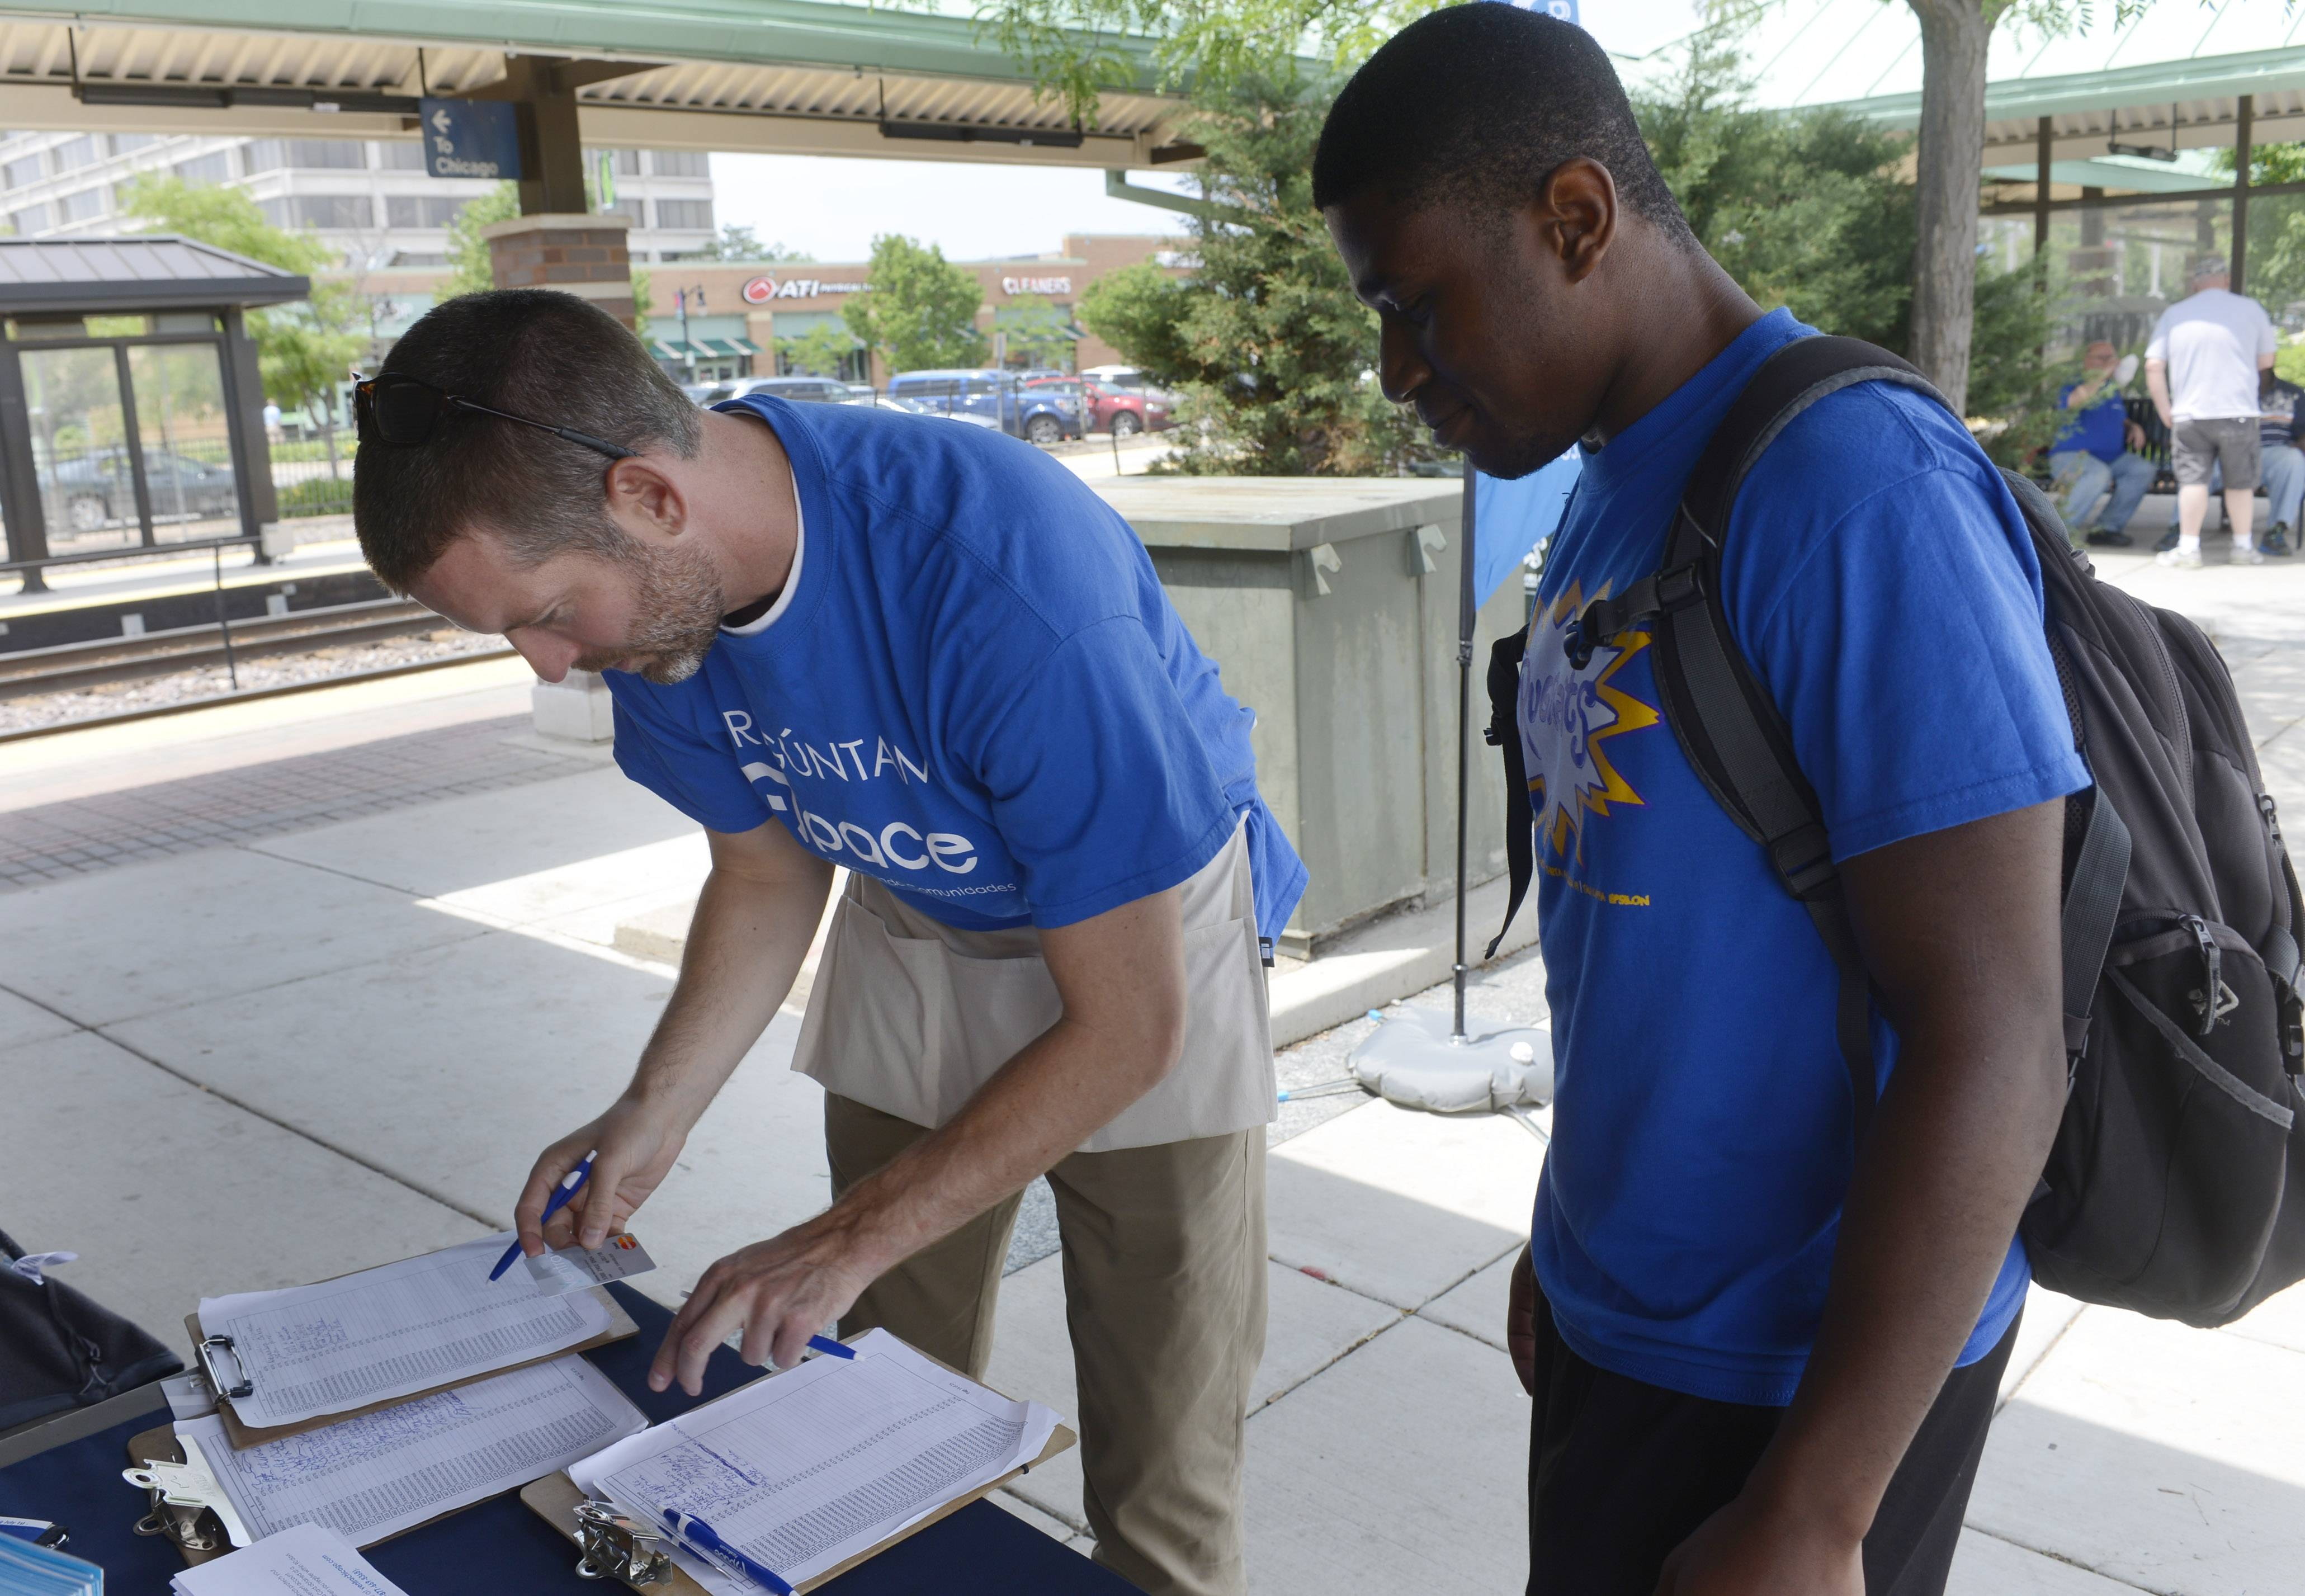 Pace representative Colin Fleming, left, signs up Brandyn Gray of Prospect Heights for the new Ventra fare system at the Des Plaines Metra station Thursday.